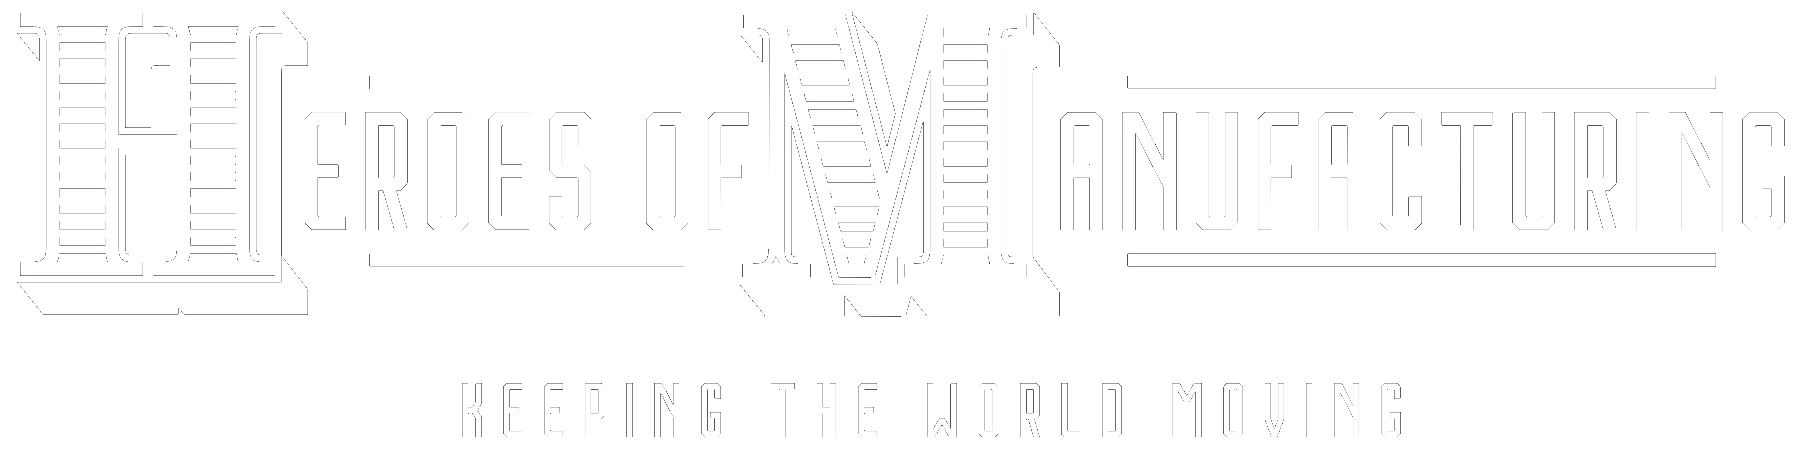 Heroes of Manufacturing - Logo - Transparent